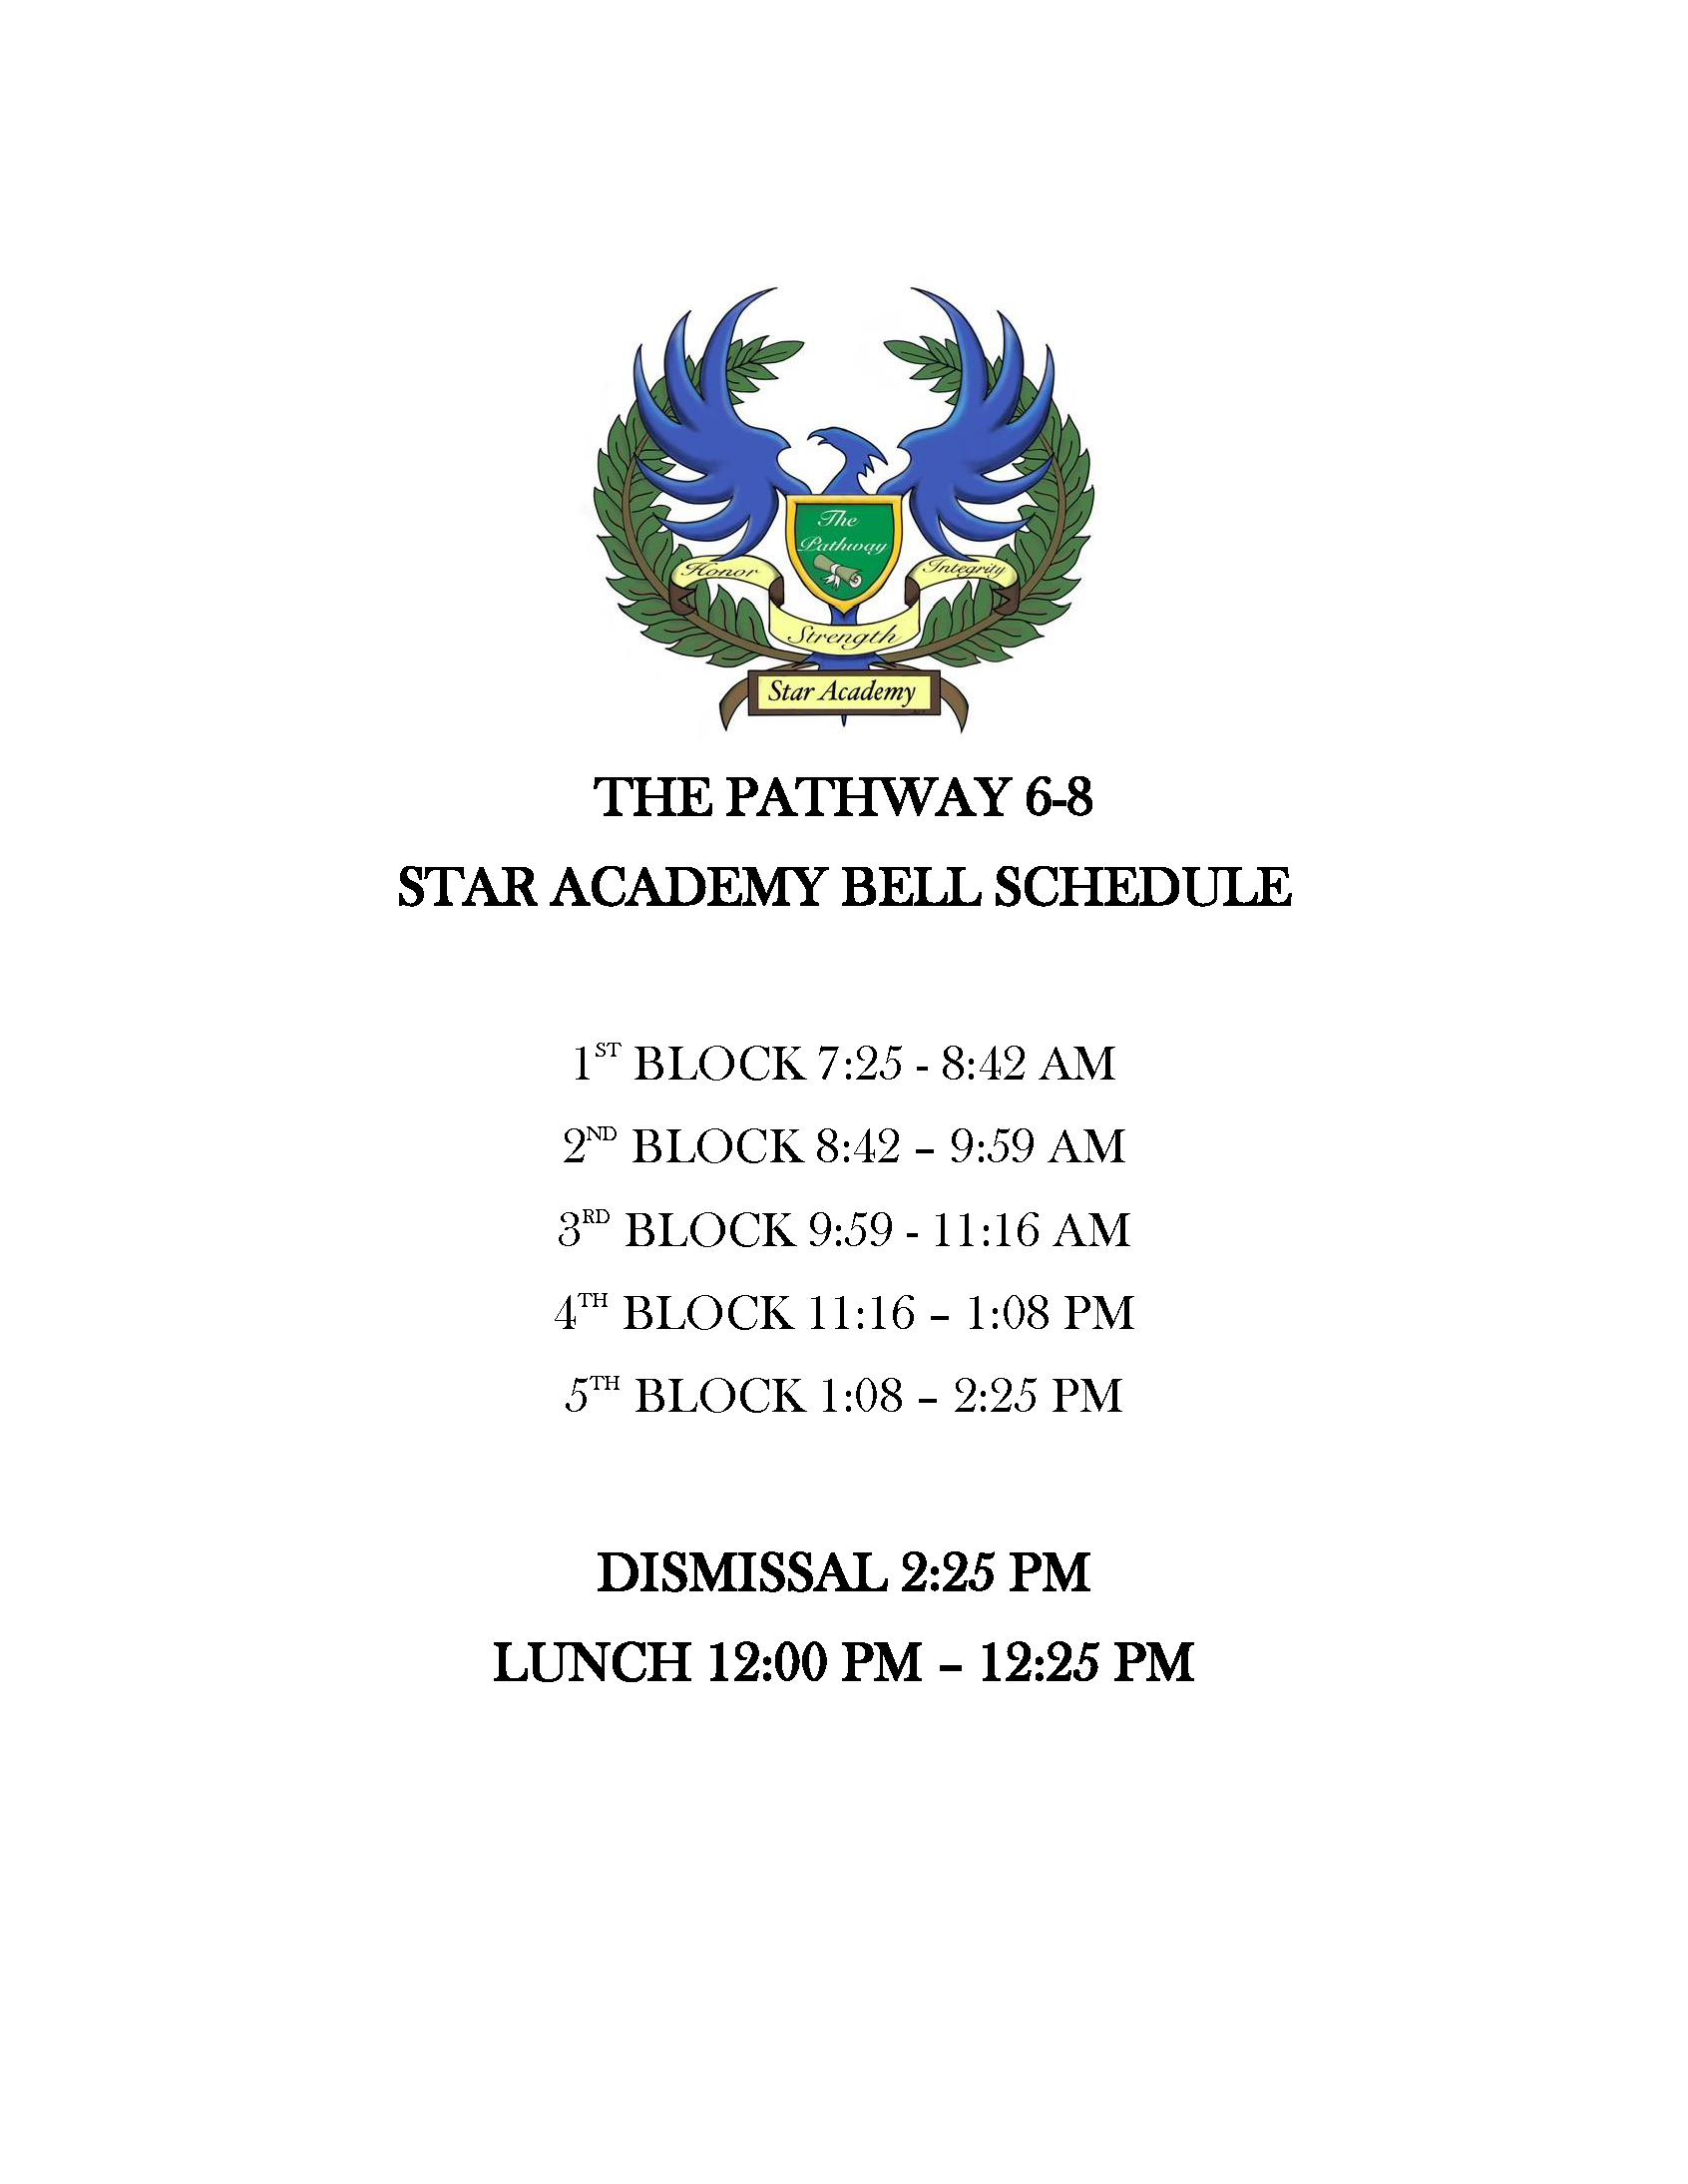 Star Academy schedule